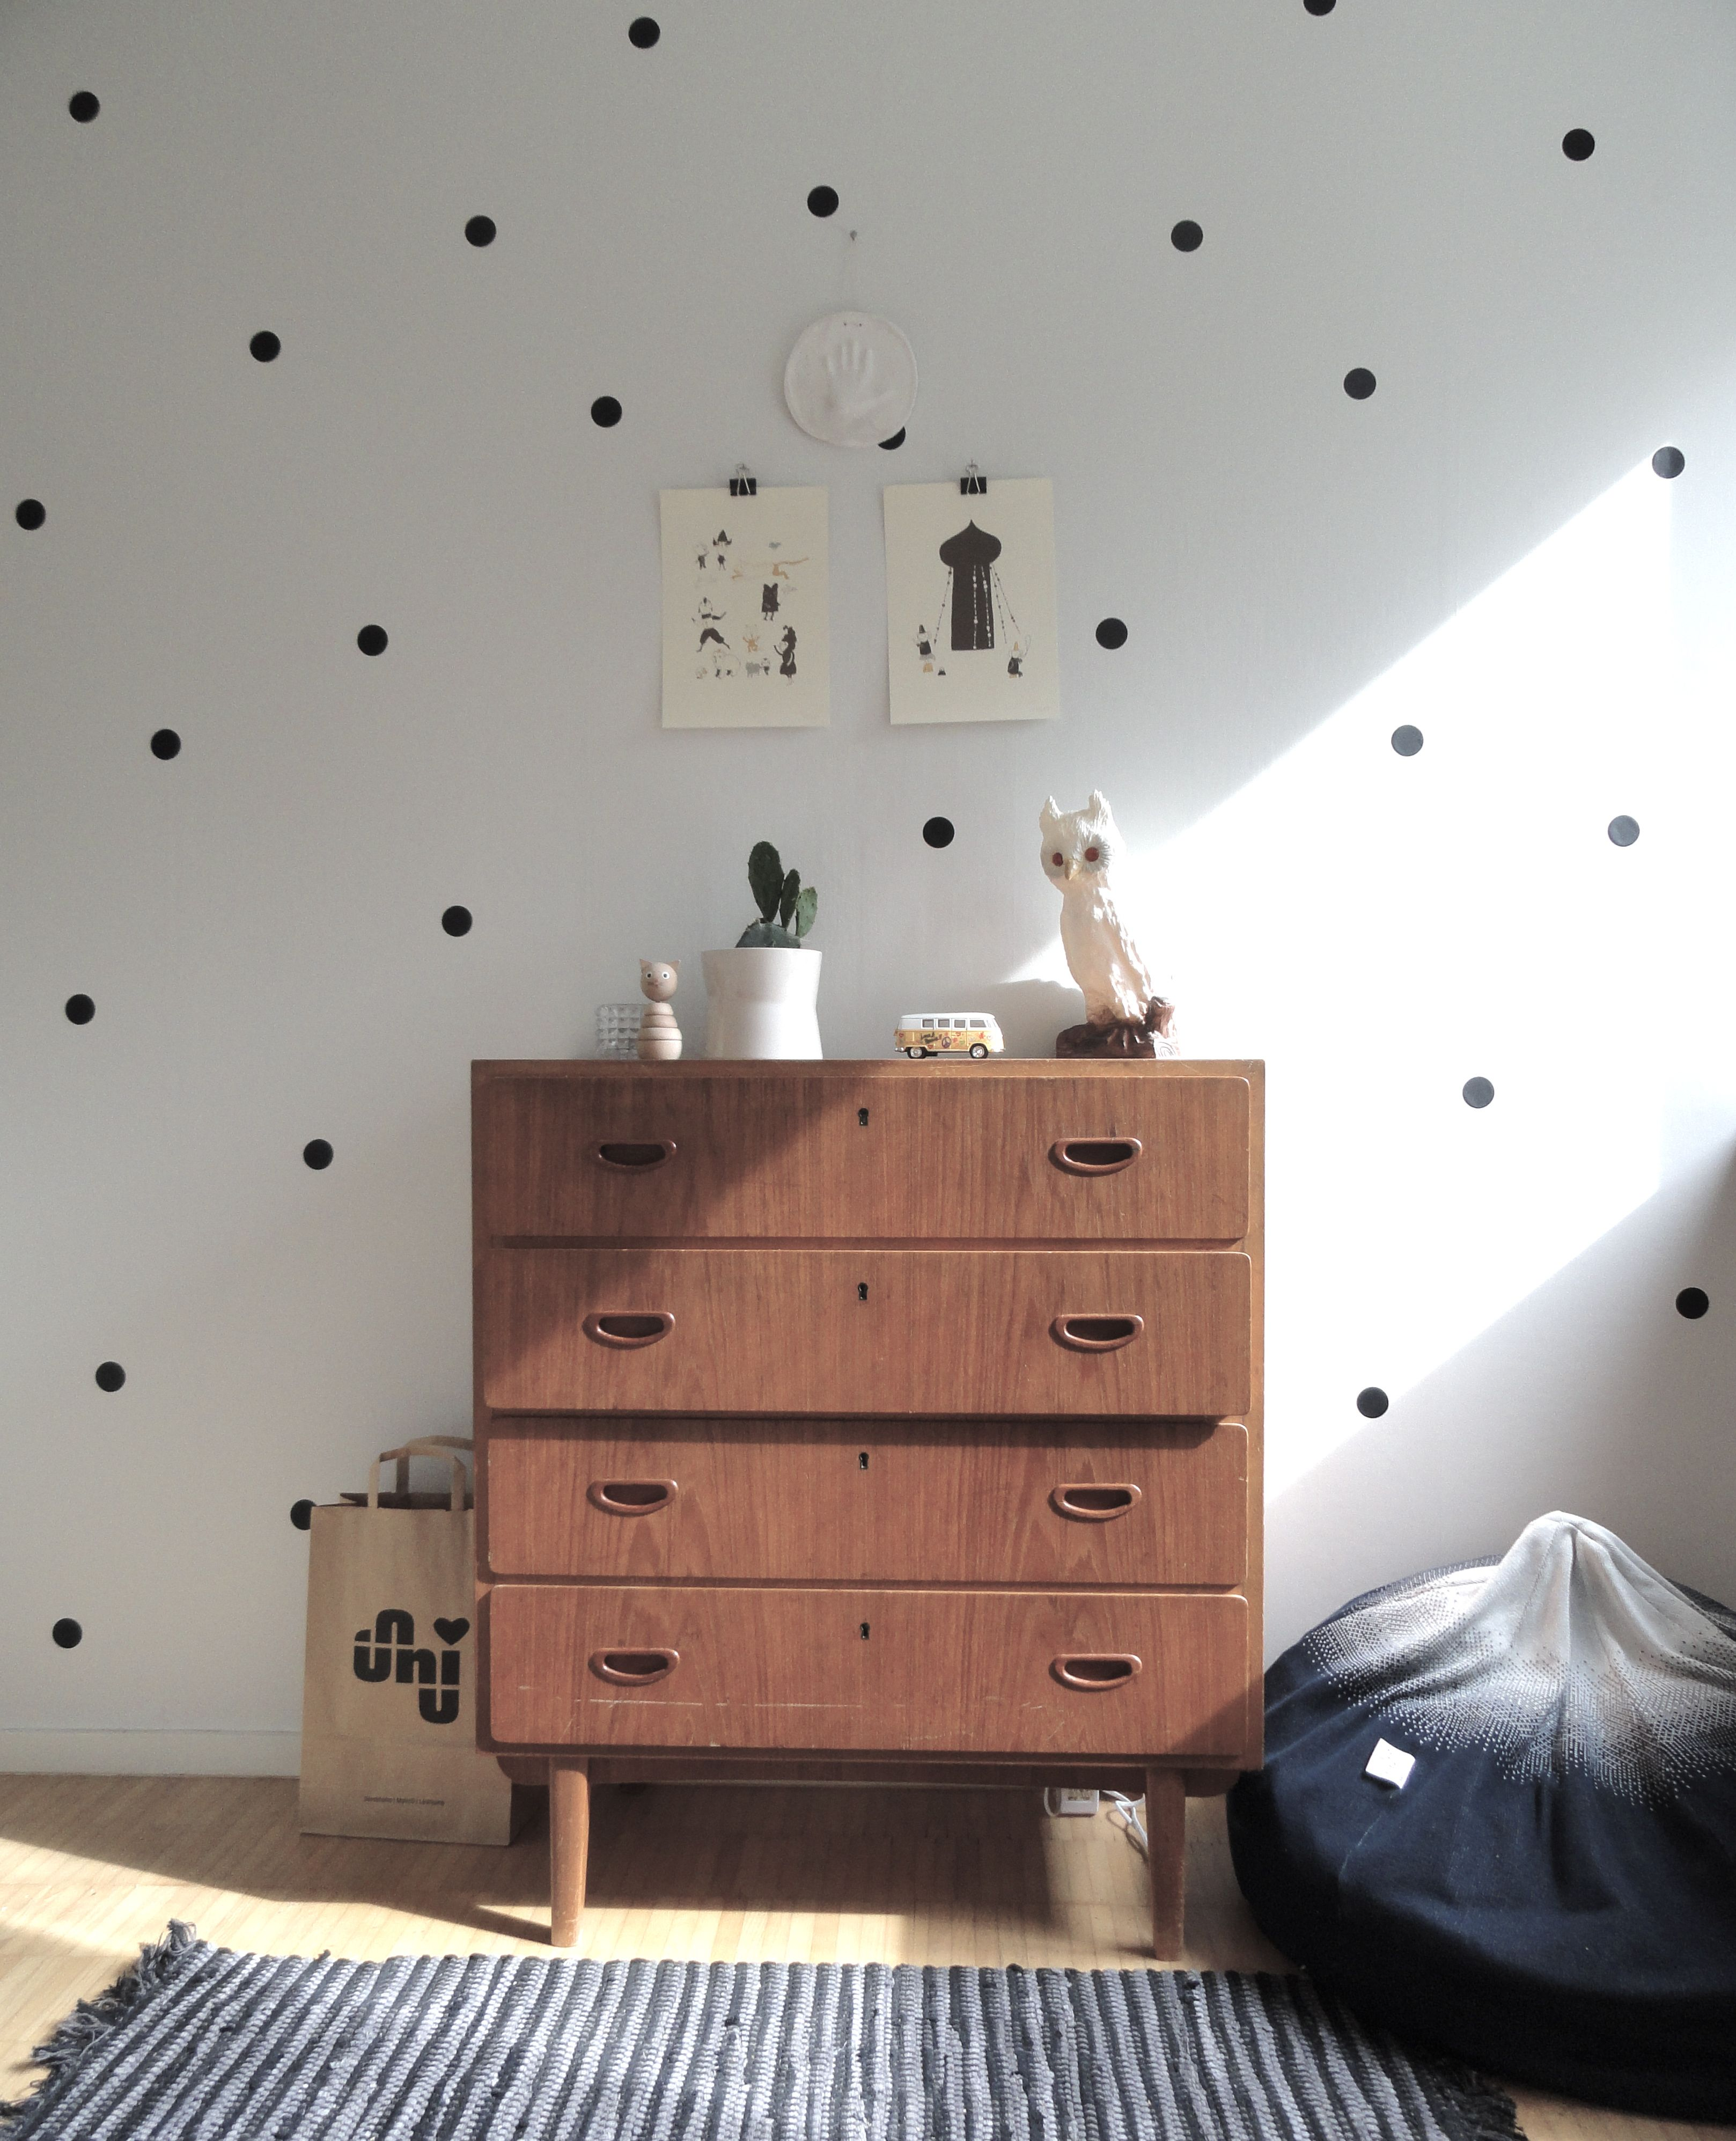 Simple Rooms That Use Polka Dot Design Twists To Look Adorable Interior Decor Polka Dot Walls